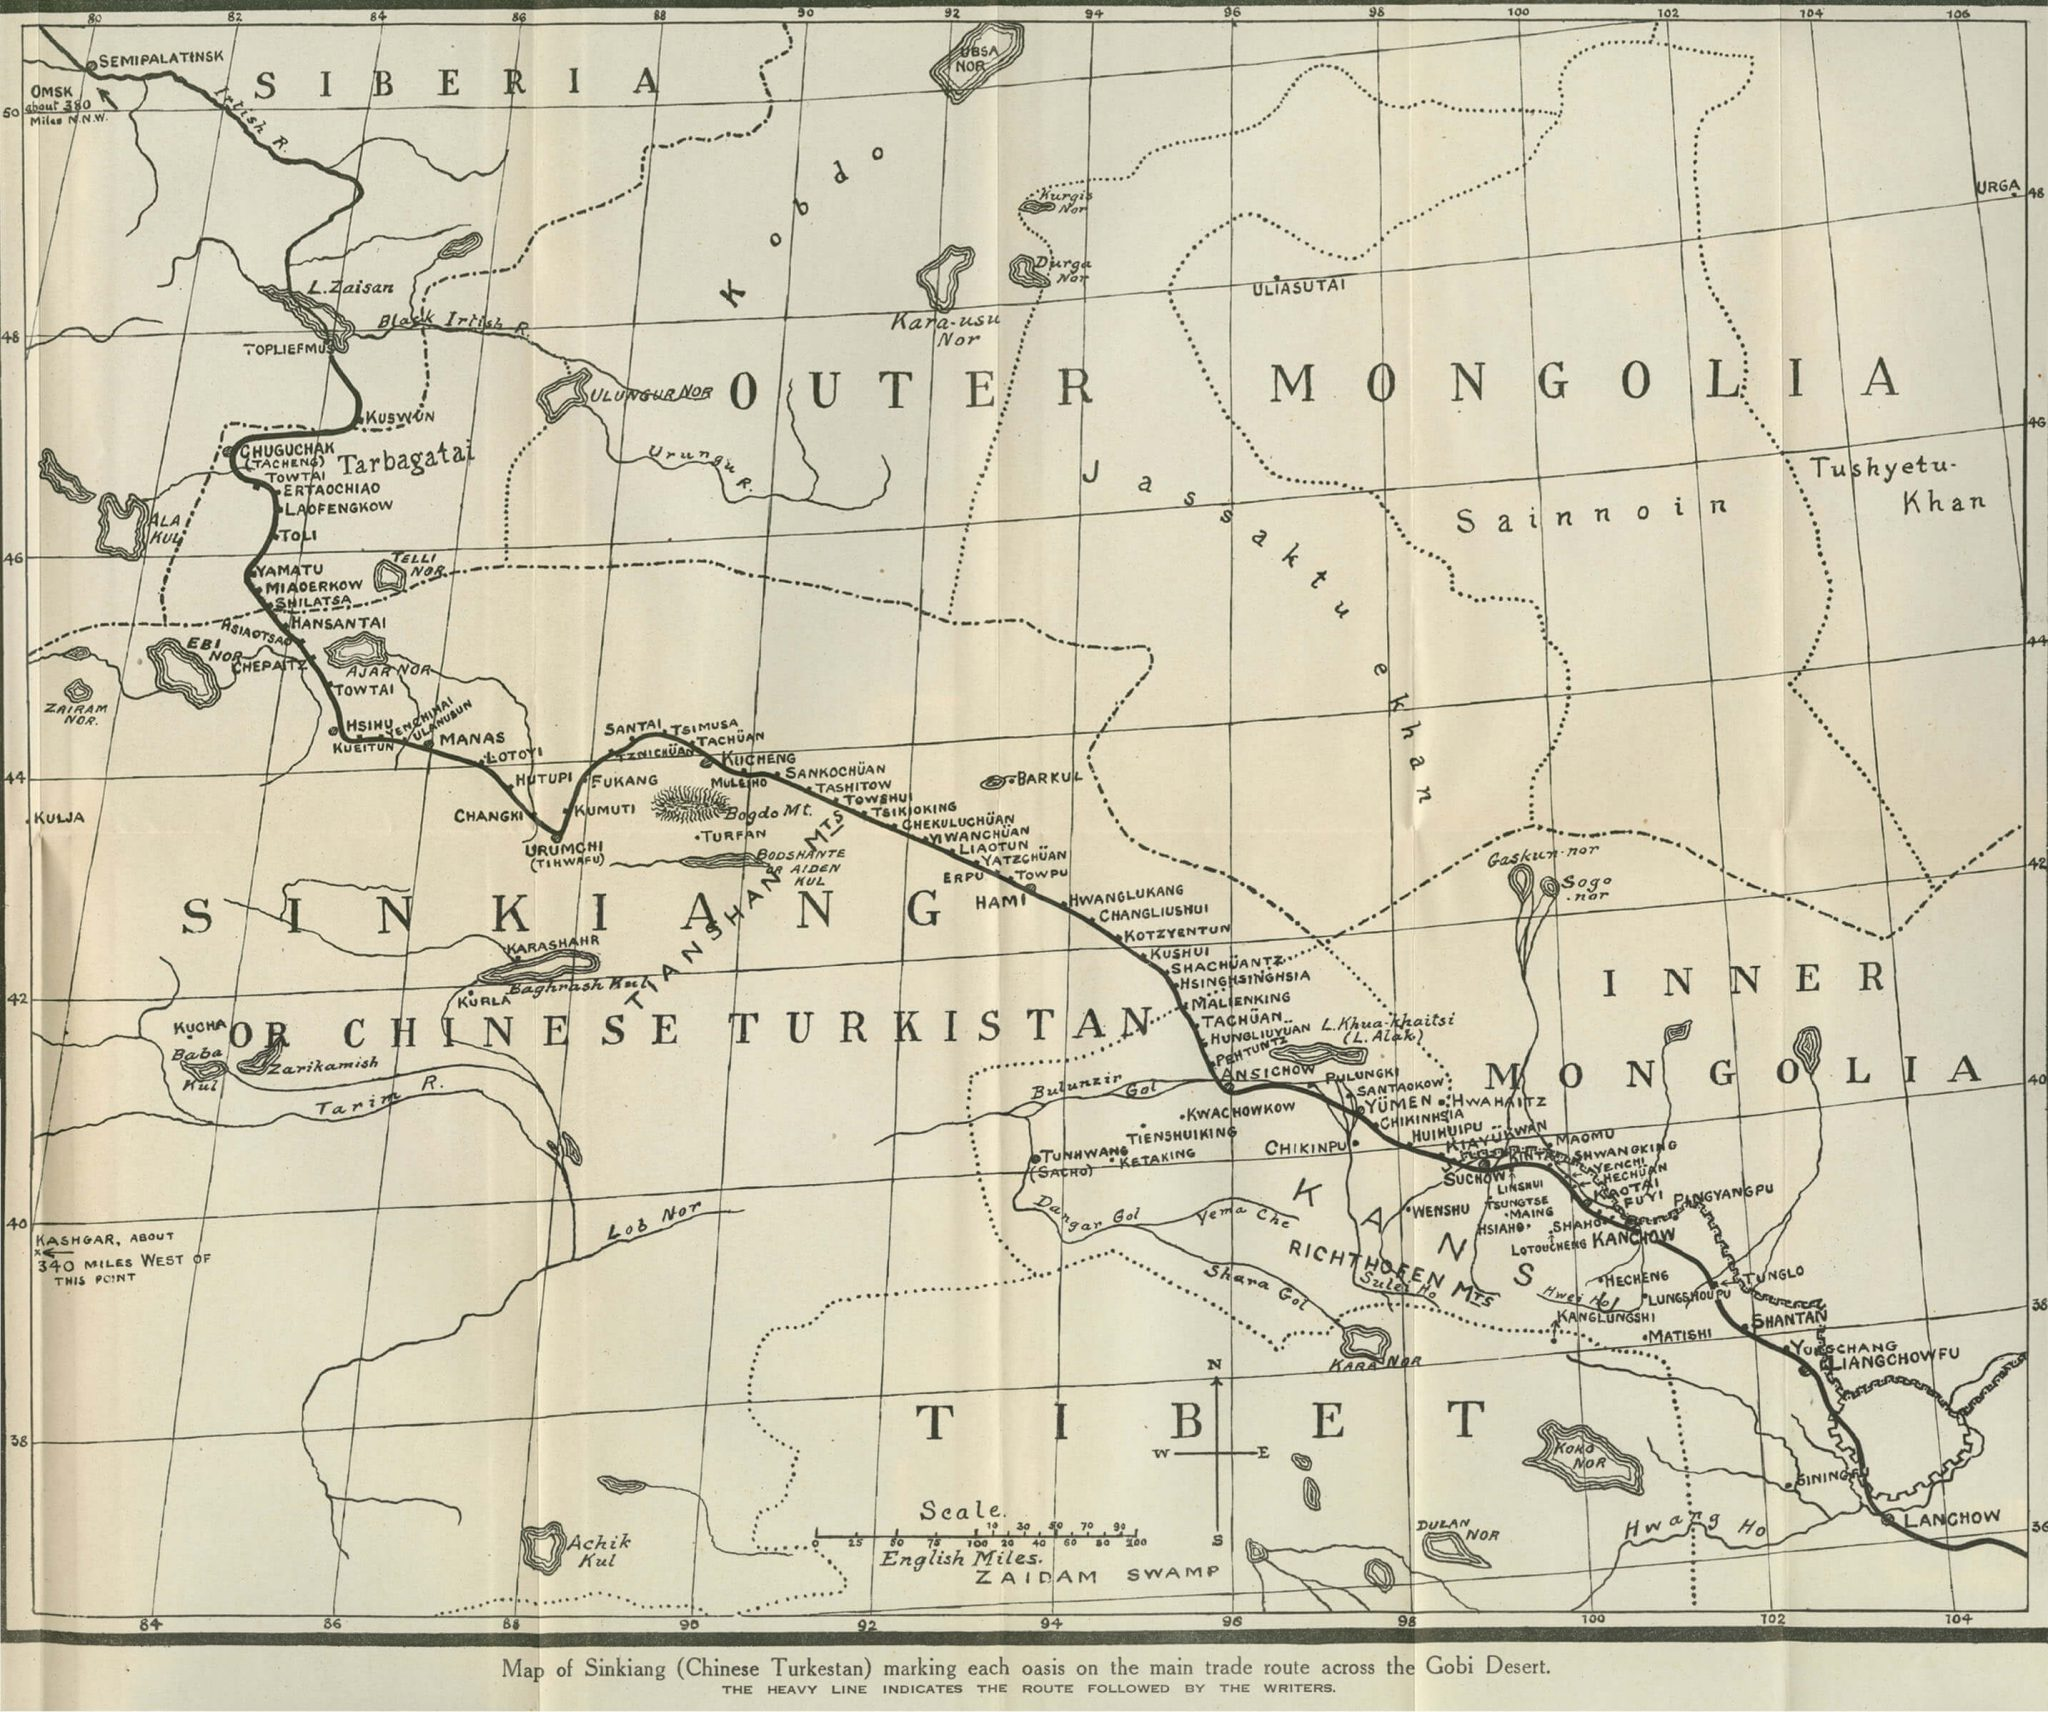 Map of Sinkiang Chinese Turkestan marking each oasis on the main trade route across the Gobi Desert 1927